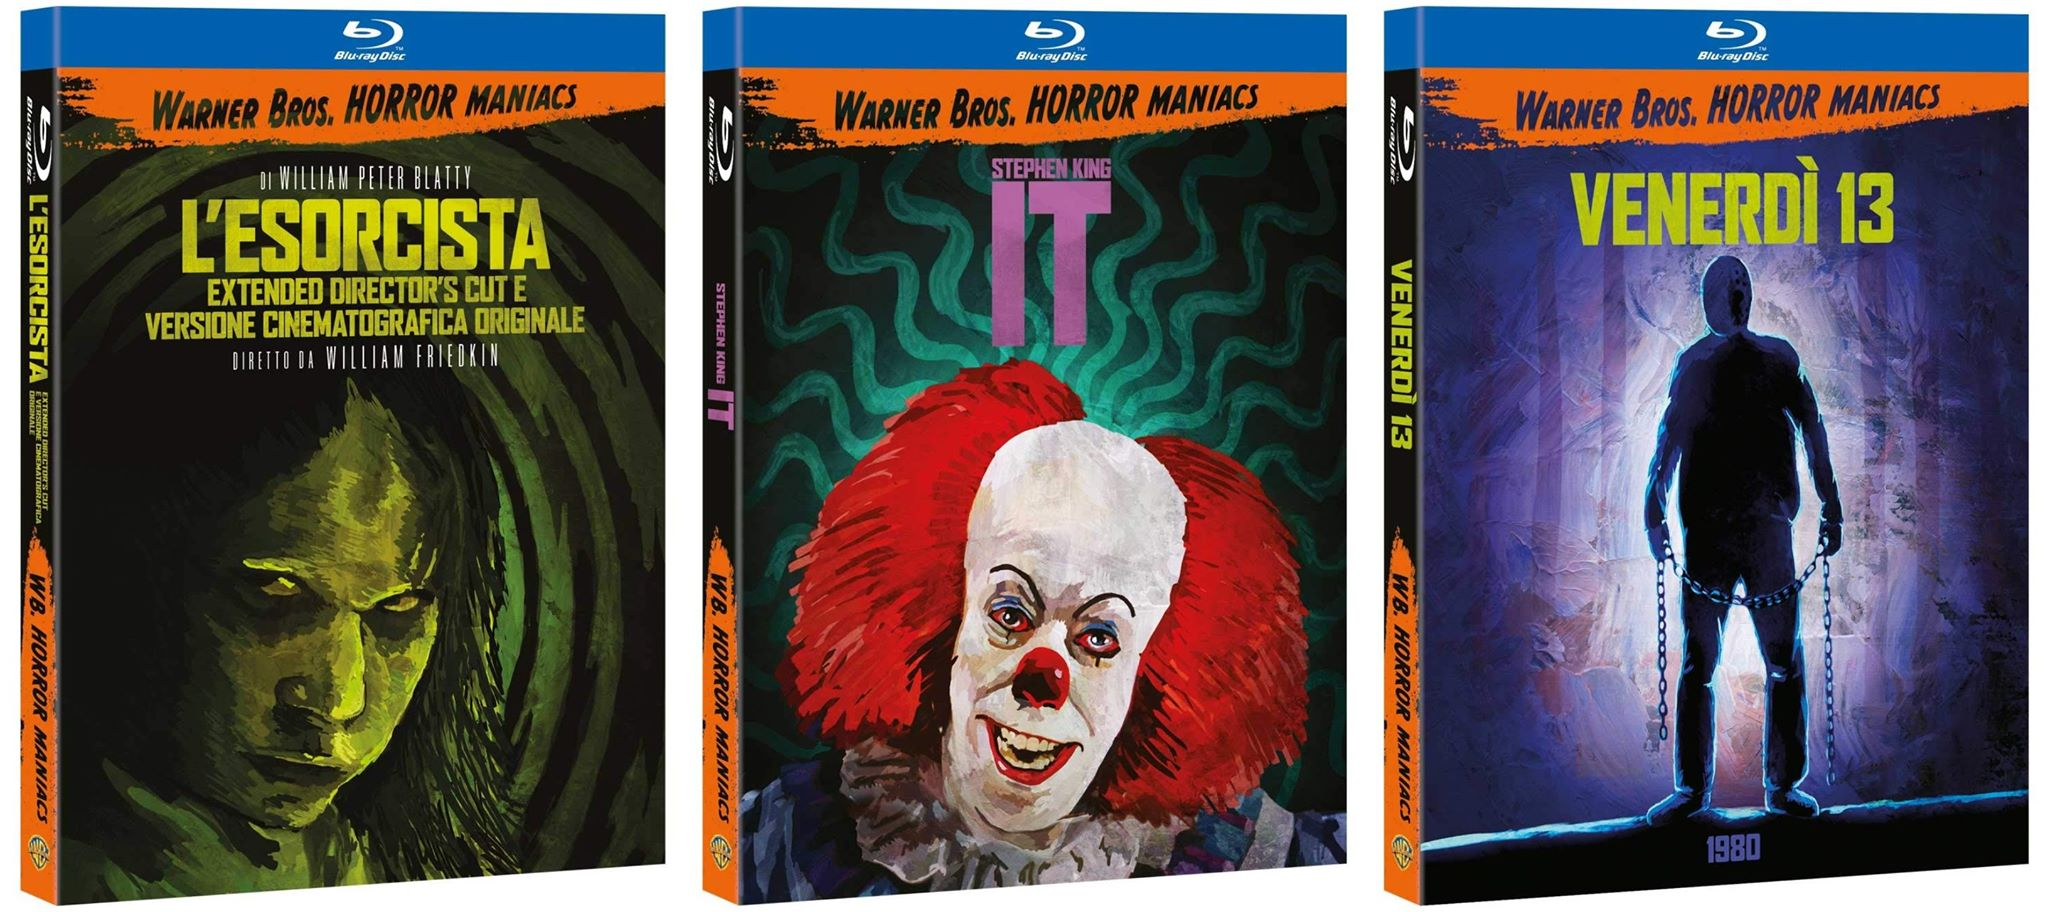 Warner Bros Home video ottobre, disponibile la Horror Maniacs Collection